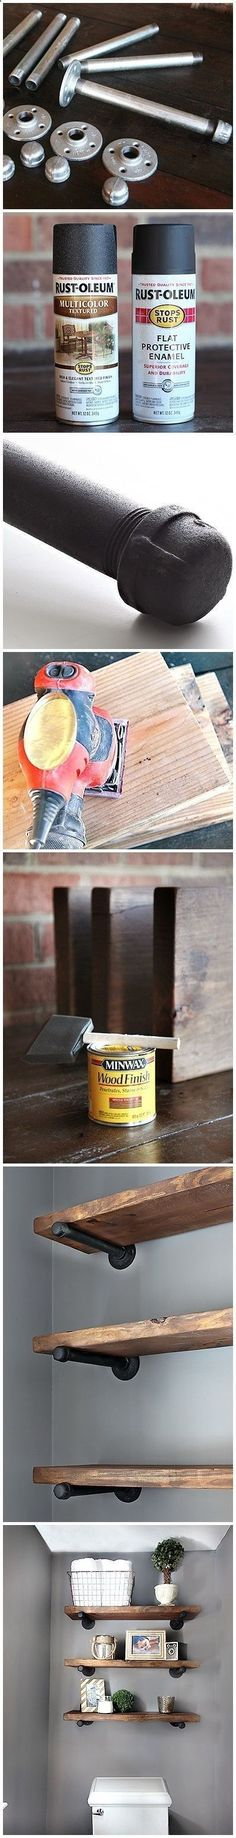 Plans of Woodworking Diy Projects - DIY Restoration Hardware - Inspired Shelving Get A Lifetime Of Project Ideas & Inspiration! #woodworkdiy